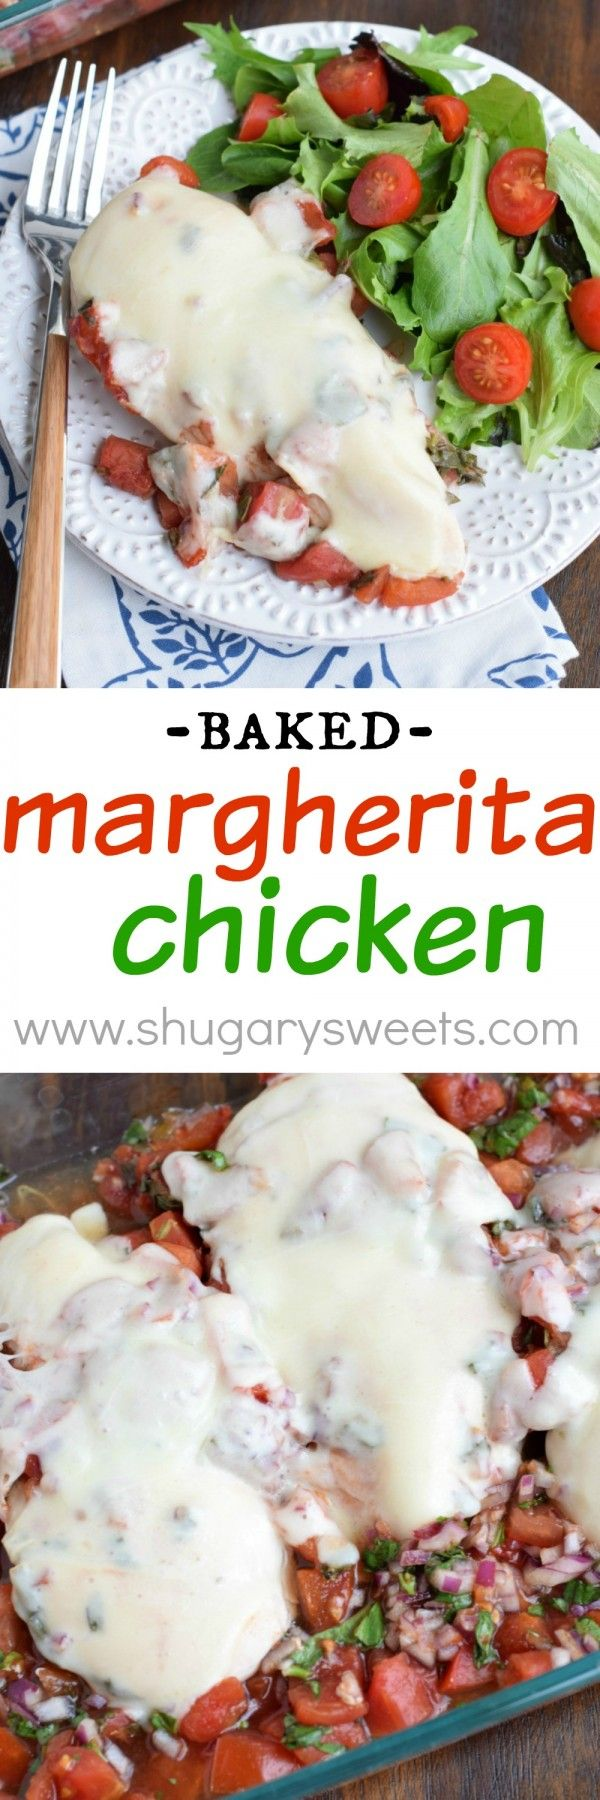 Baked Margherita Chicken: easy to prepare and makes a delicious dinner idea! Serve with salad or pasta!